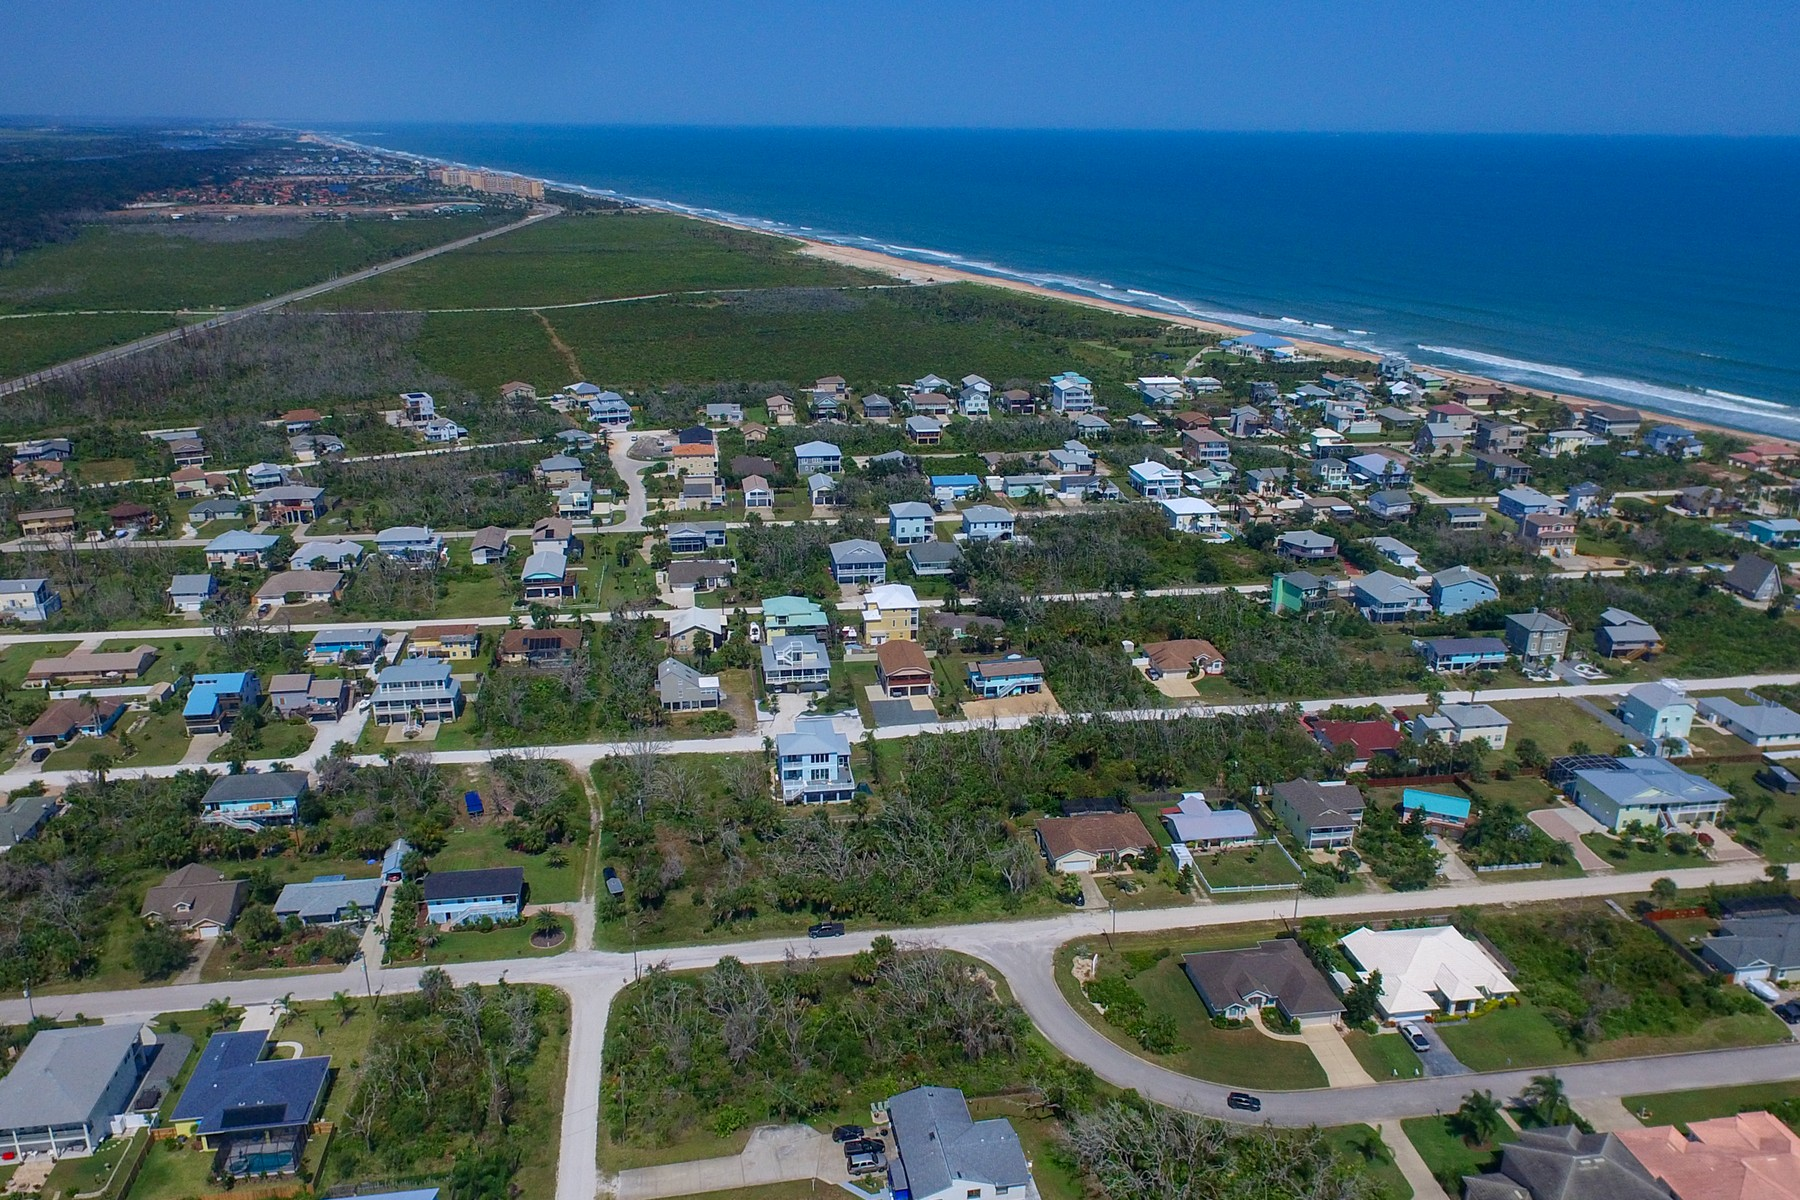 Land for Sale at Build Your Dream Home on This Over-Sized Lot Just Steps from the Beach! 7 Central Avenue Palm Coast, Florida 32137 United States